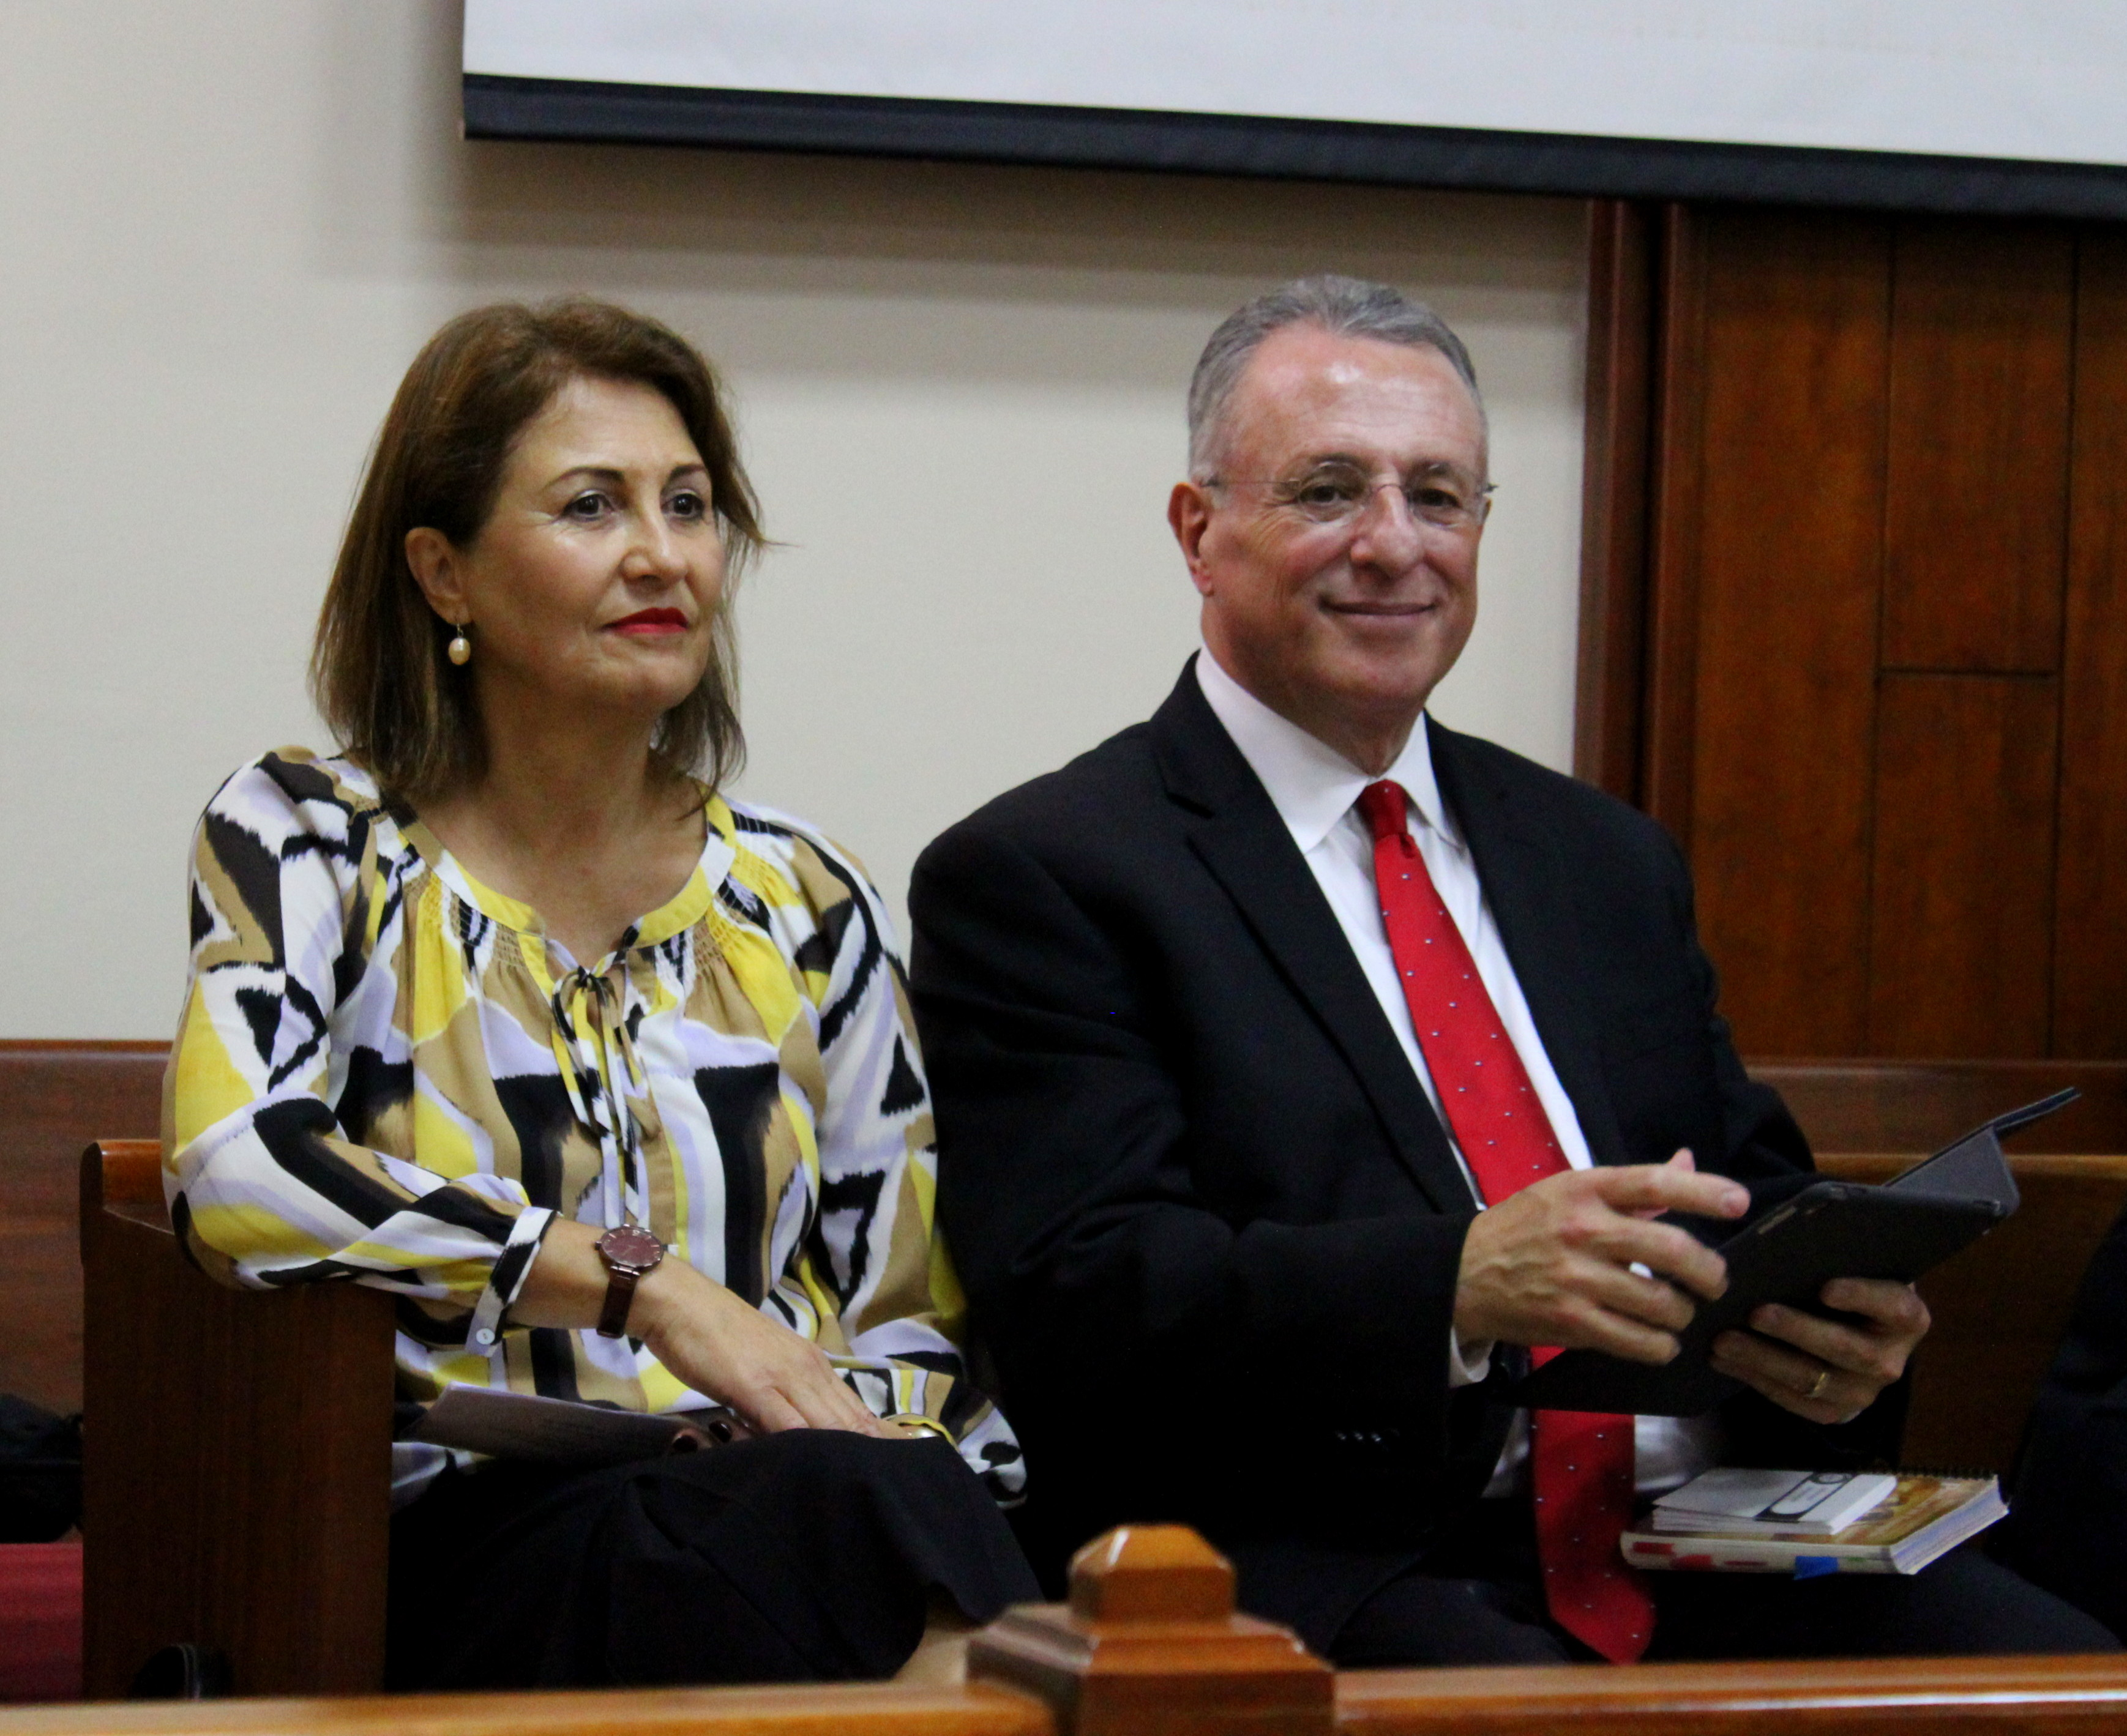 Elder Ulisses Soares of the Quorum of the Twelve Apostles addresses missionaries in Costa Rica on Nov. 8, 2018.